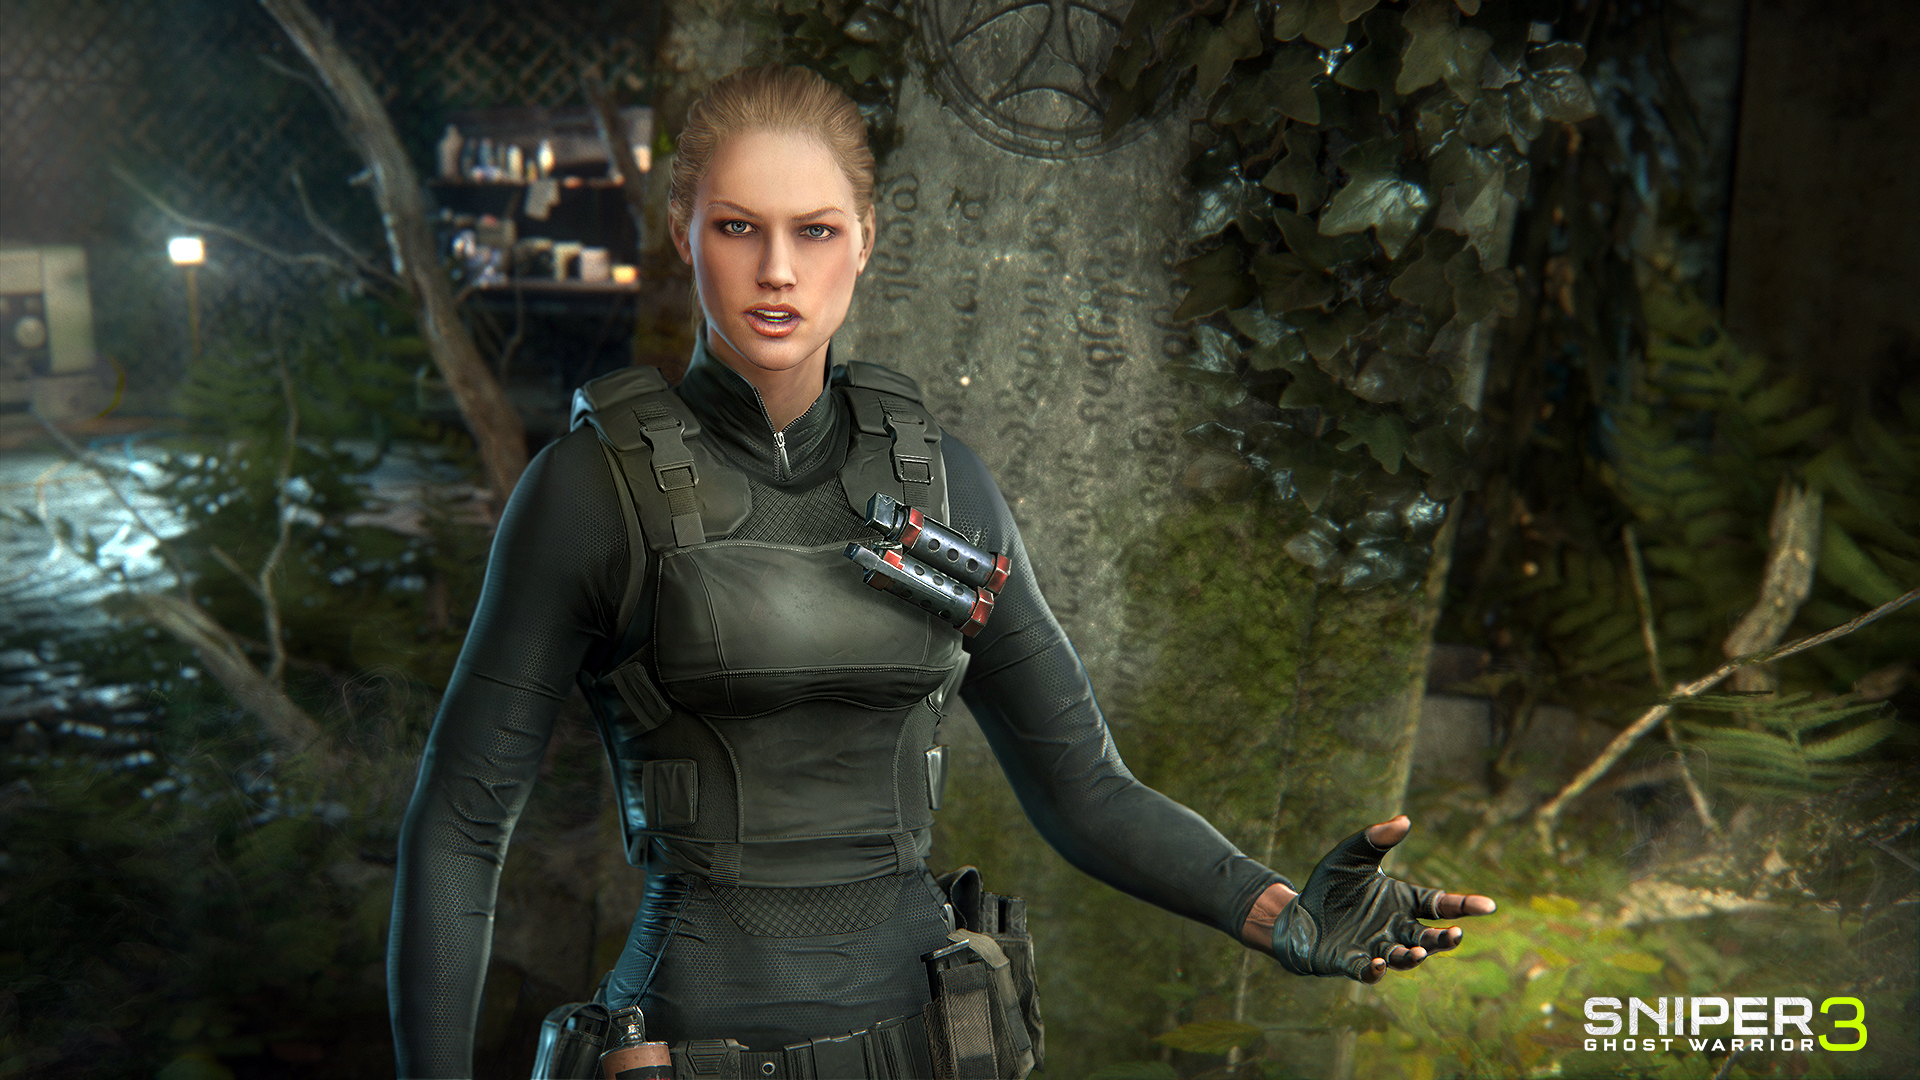 KHAiHOM.com - Sniper Ghost Warrior 3 - The Escape of Lydia